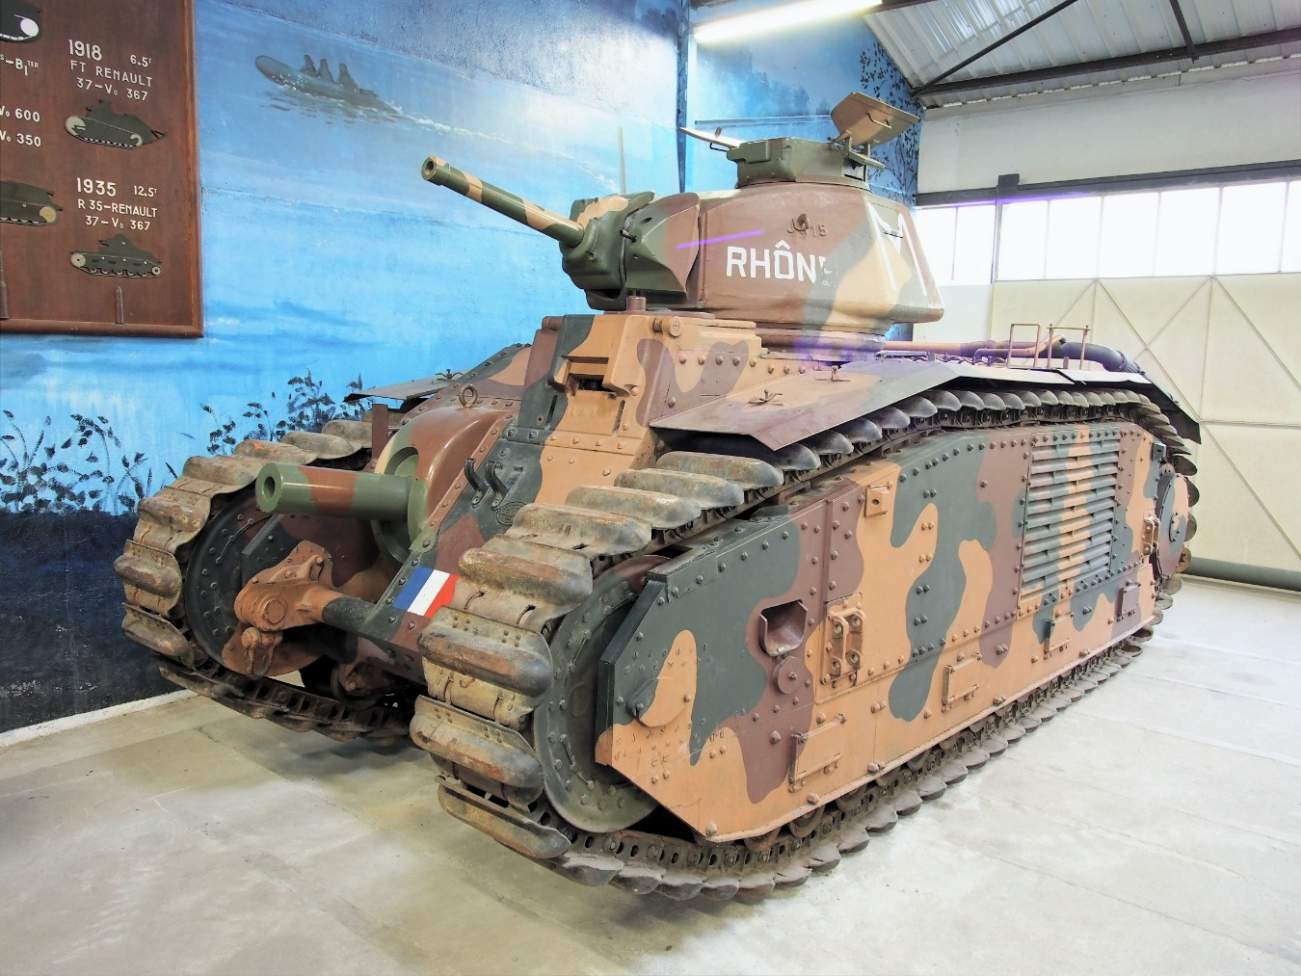 France Couldn't Beat Nazi Germany, But Its Char B1 Tanks Gave Hitler Fits